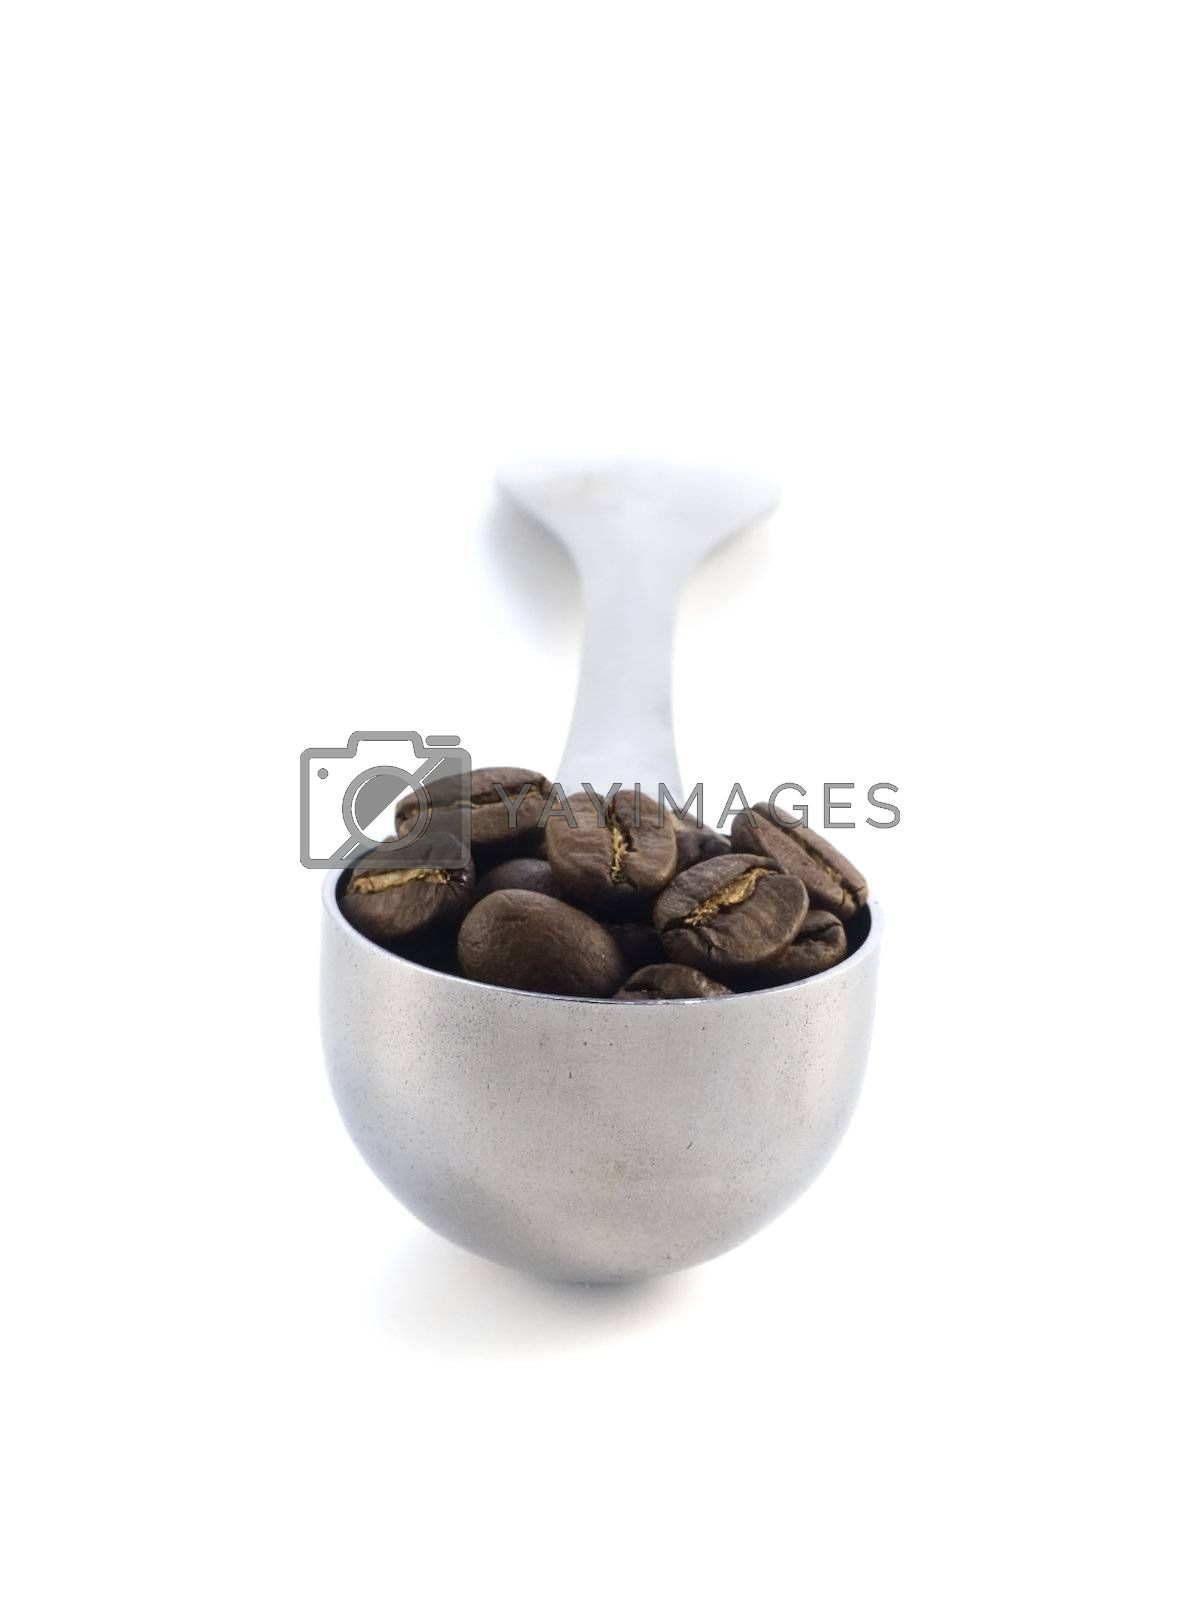 spoon full of coffee beans isolated on white background